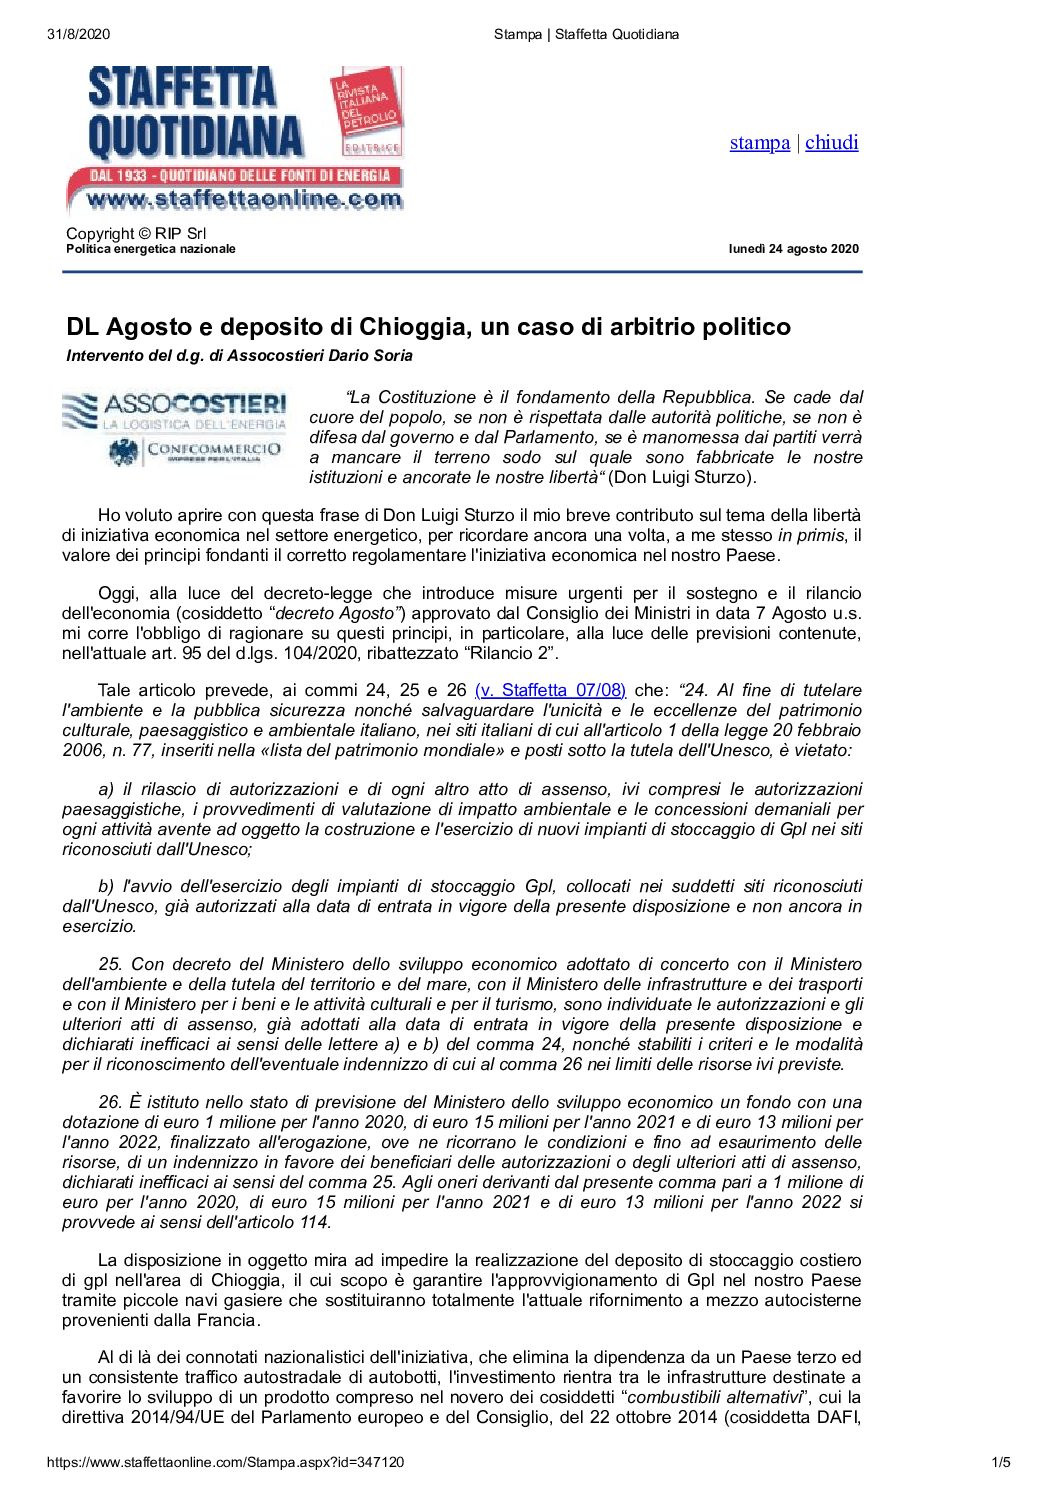 24.08.2020 – DL August and deposit of Chioggia, a case of political arbitration